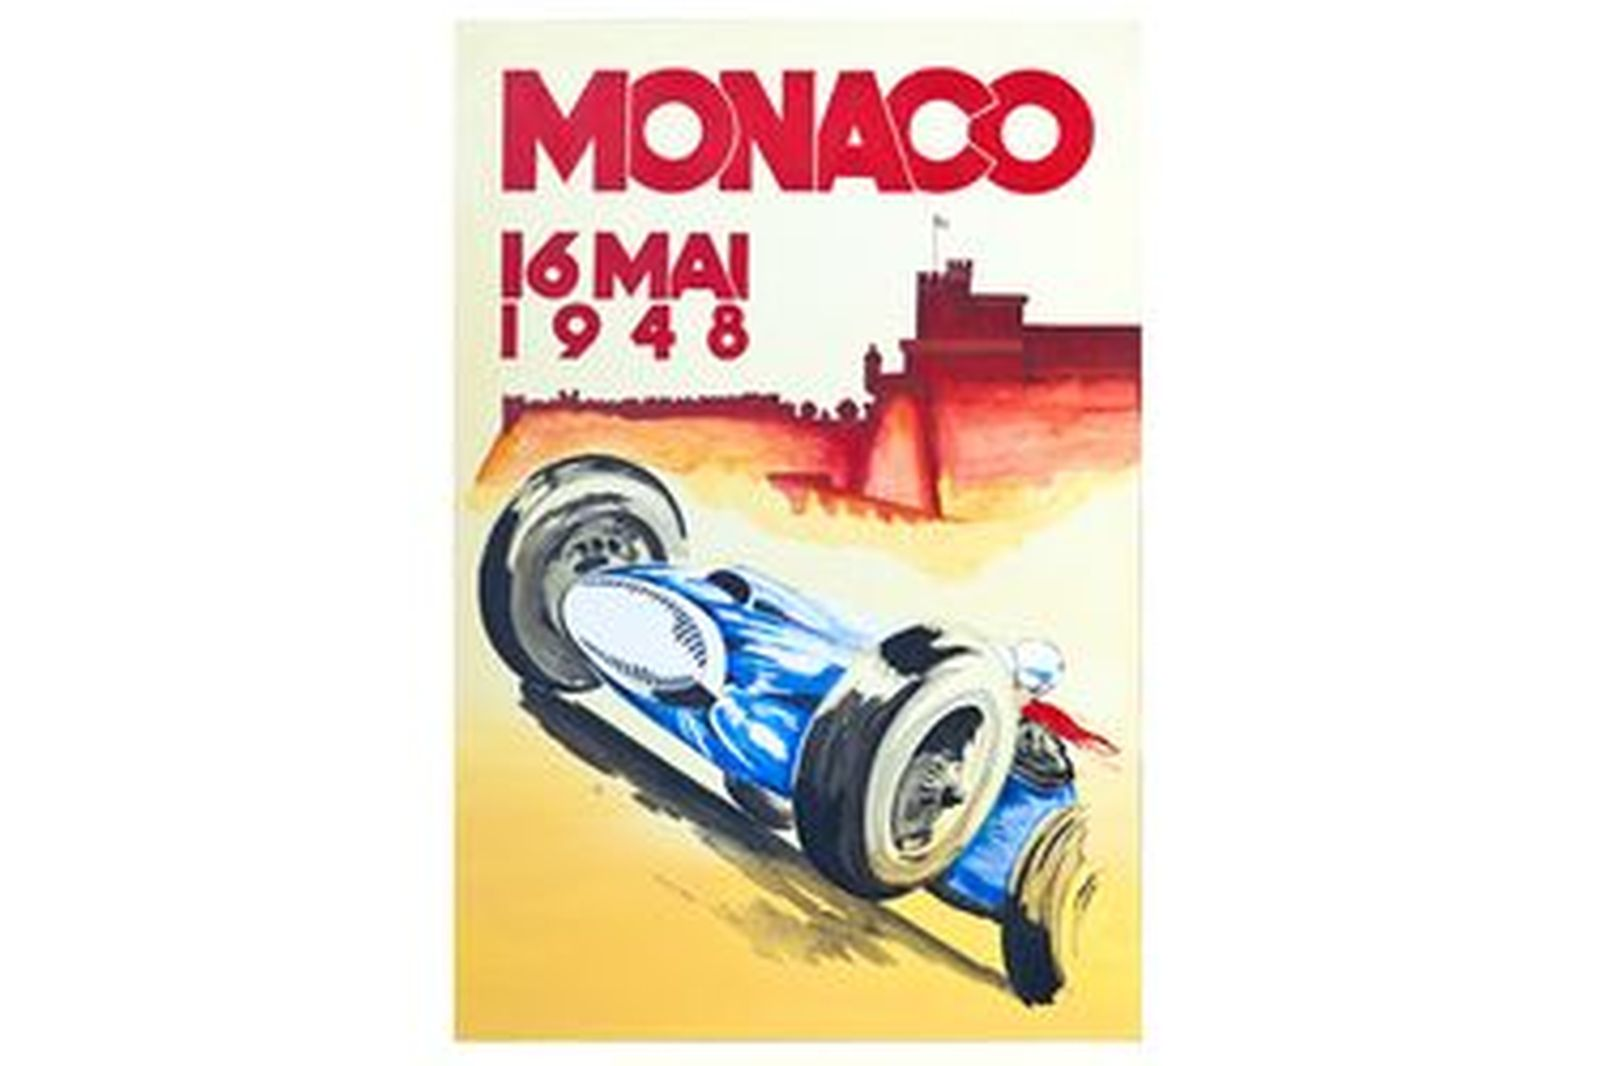 Quality Prints Framed - Monaco 16 MAI 1948 (594 x 841mm)